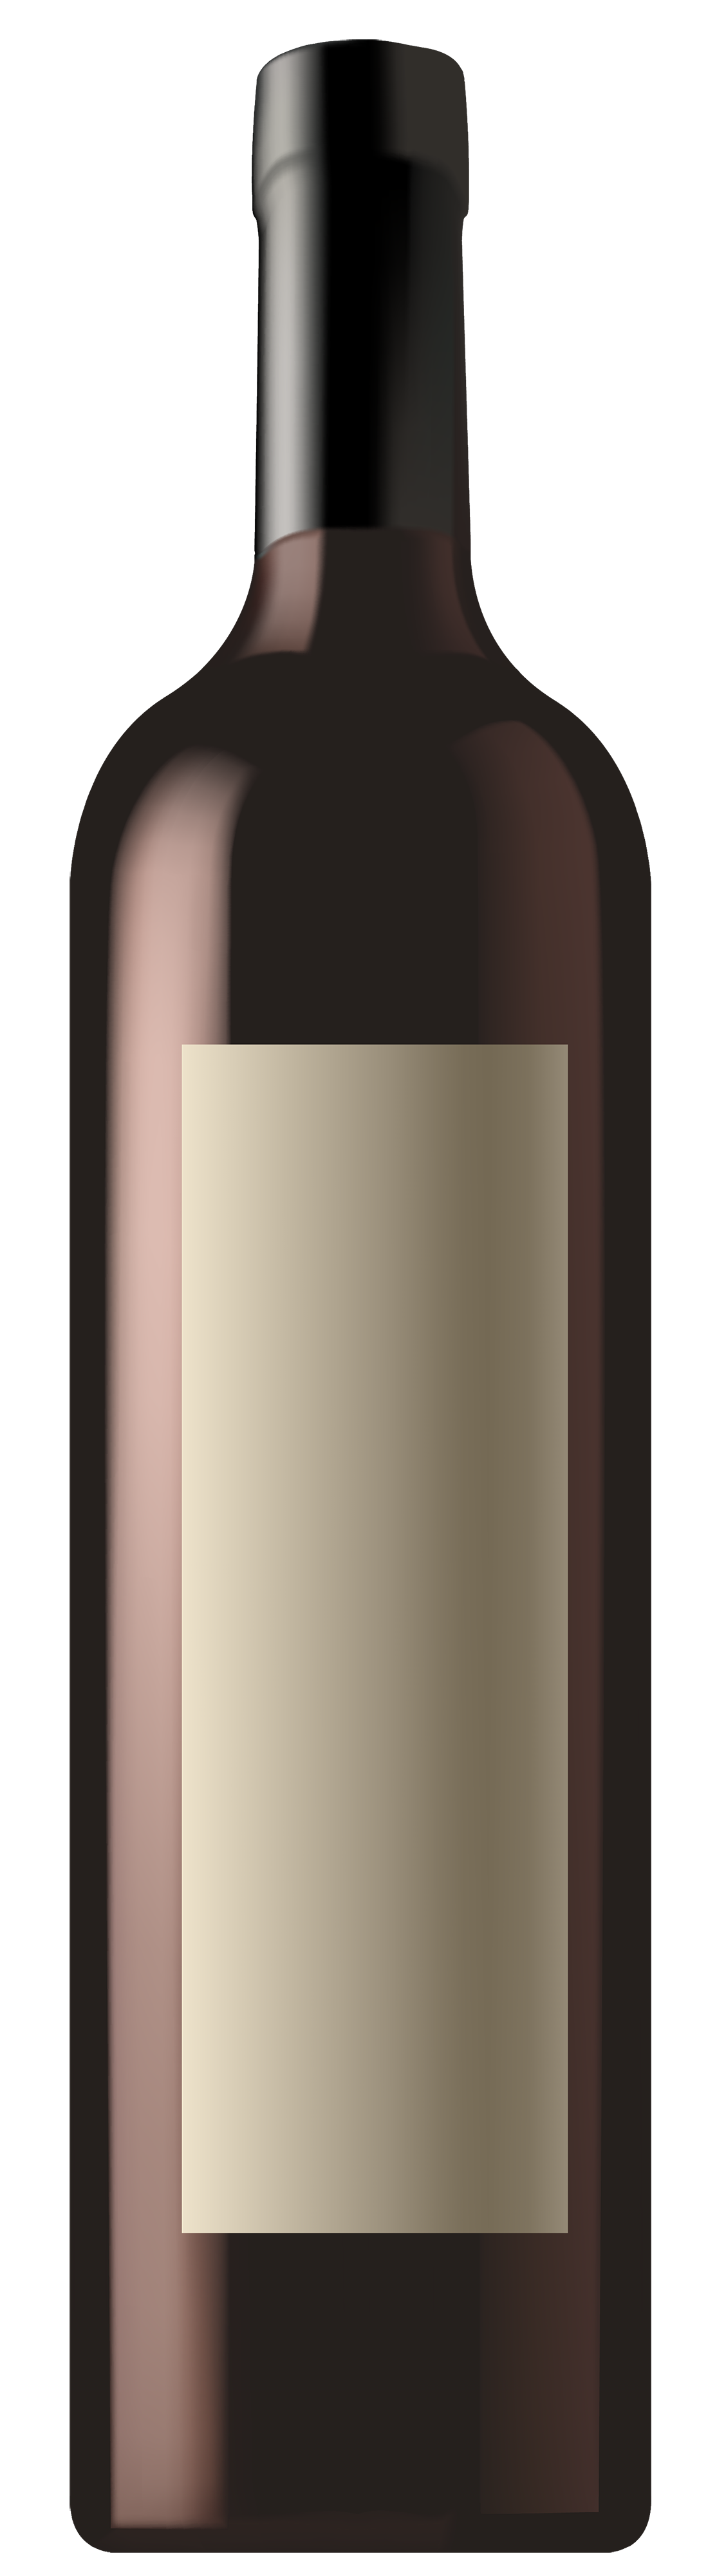 collection of clipart. Red wine bottle png